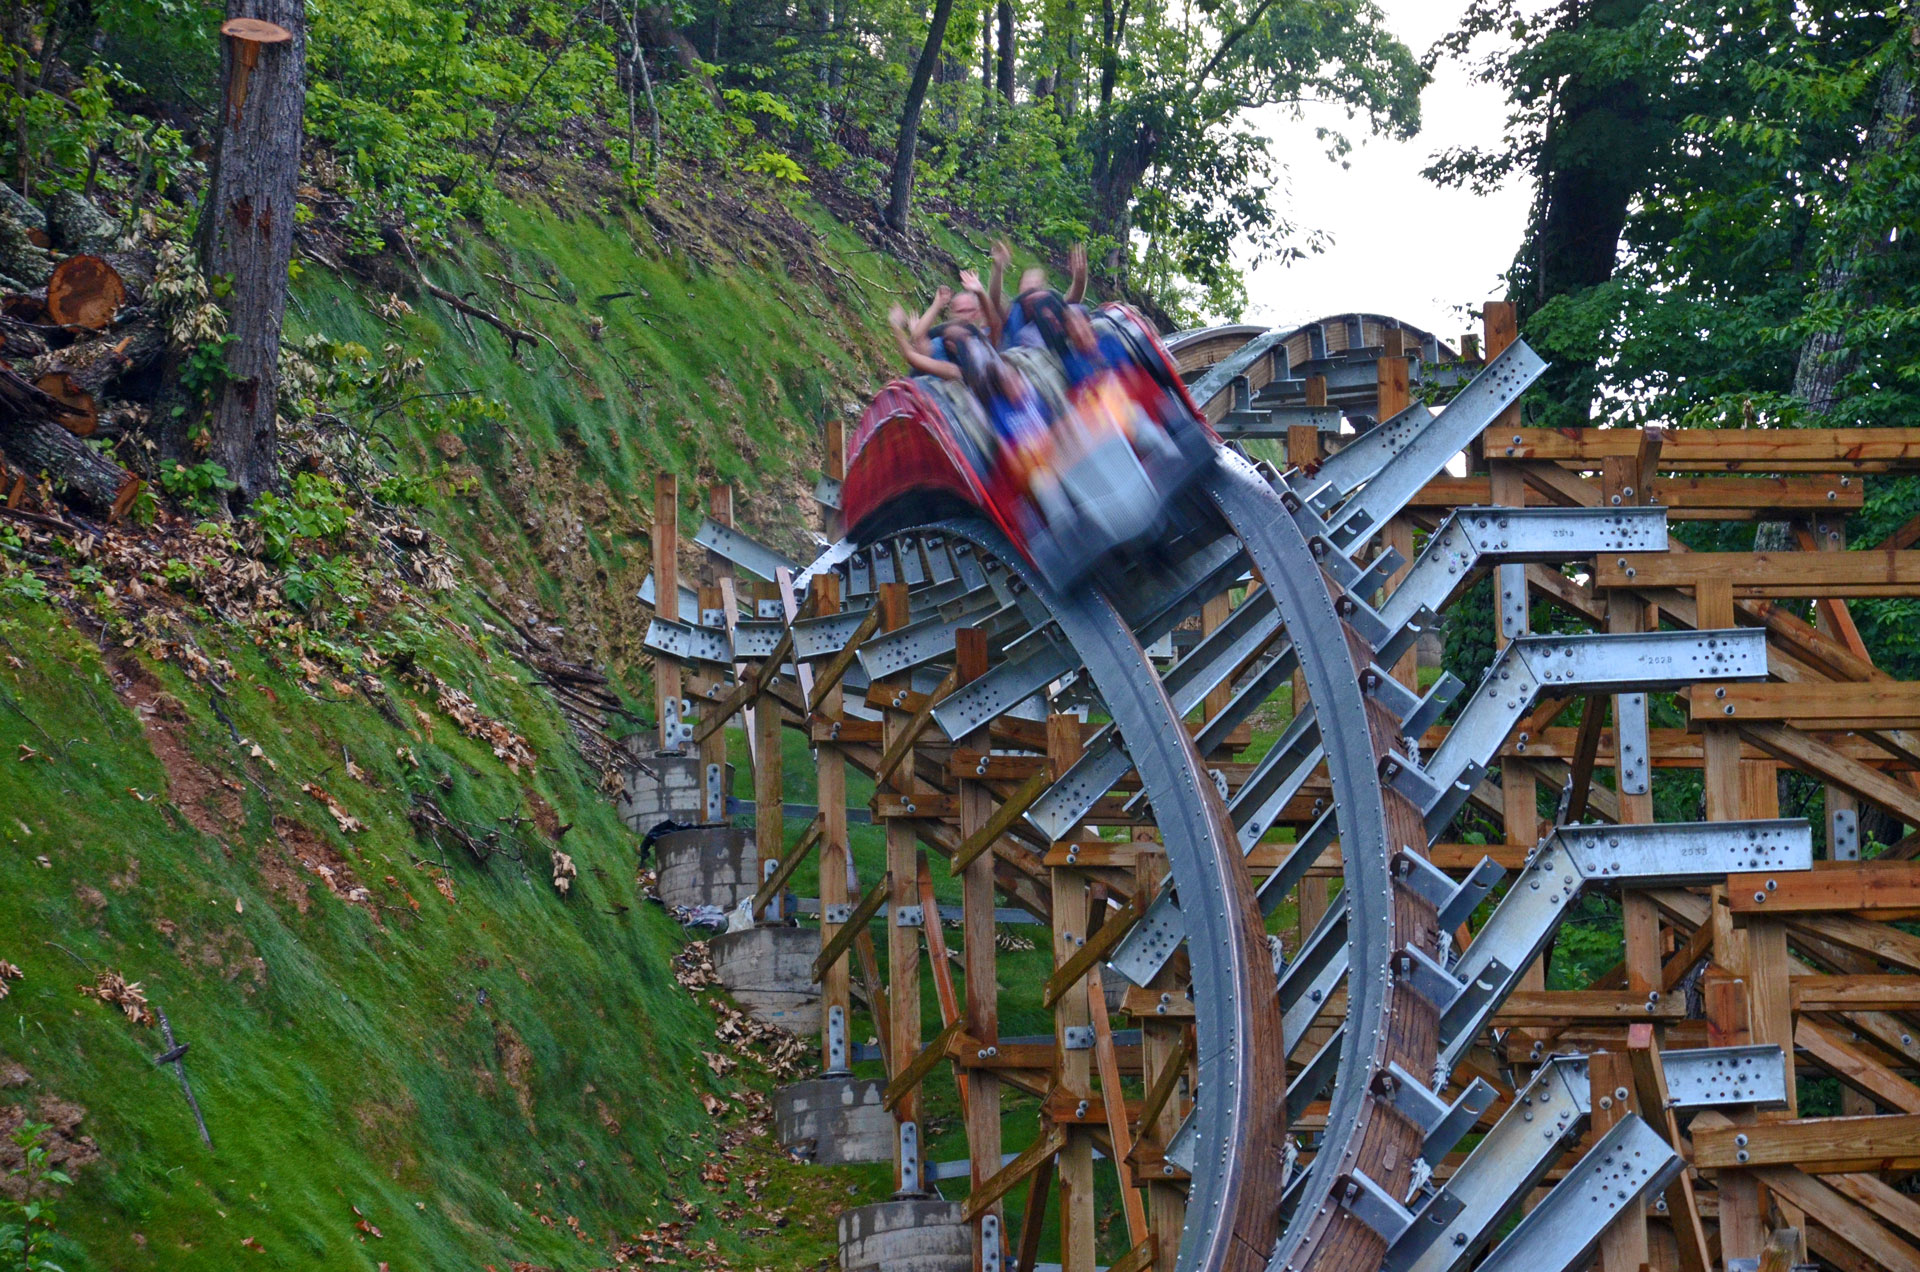 LSM LAUNCHED COASTER VIDEOS & FACTS - COASTERFORCE